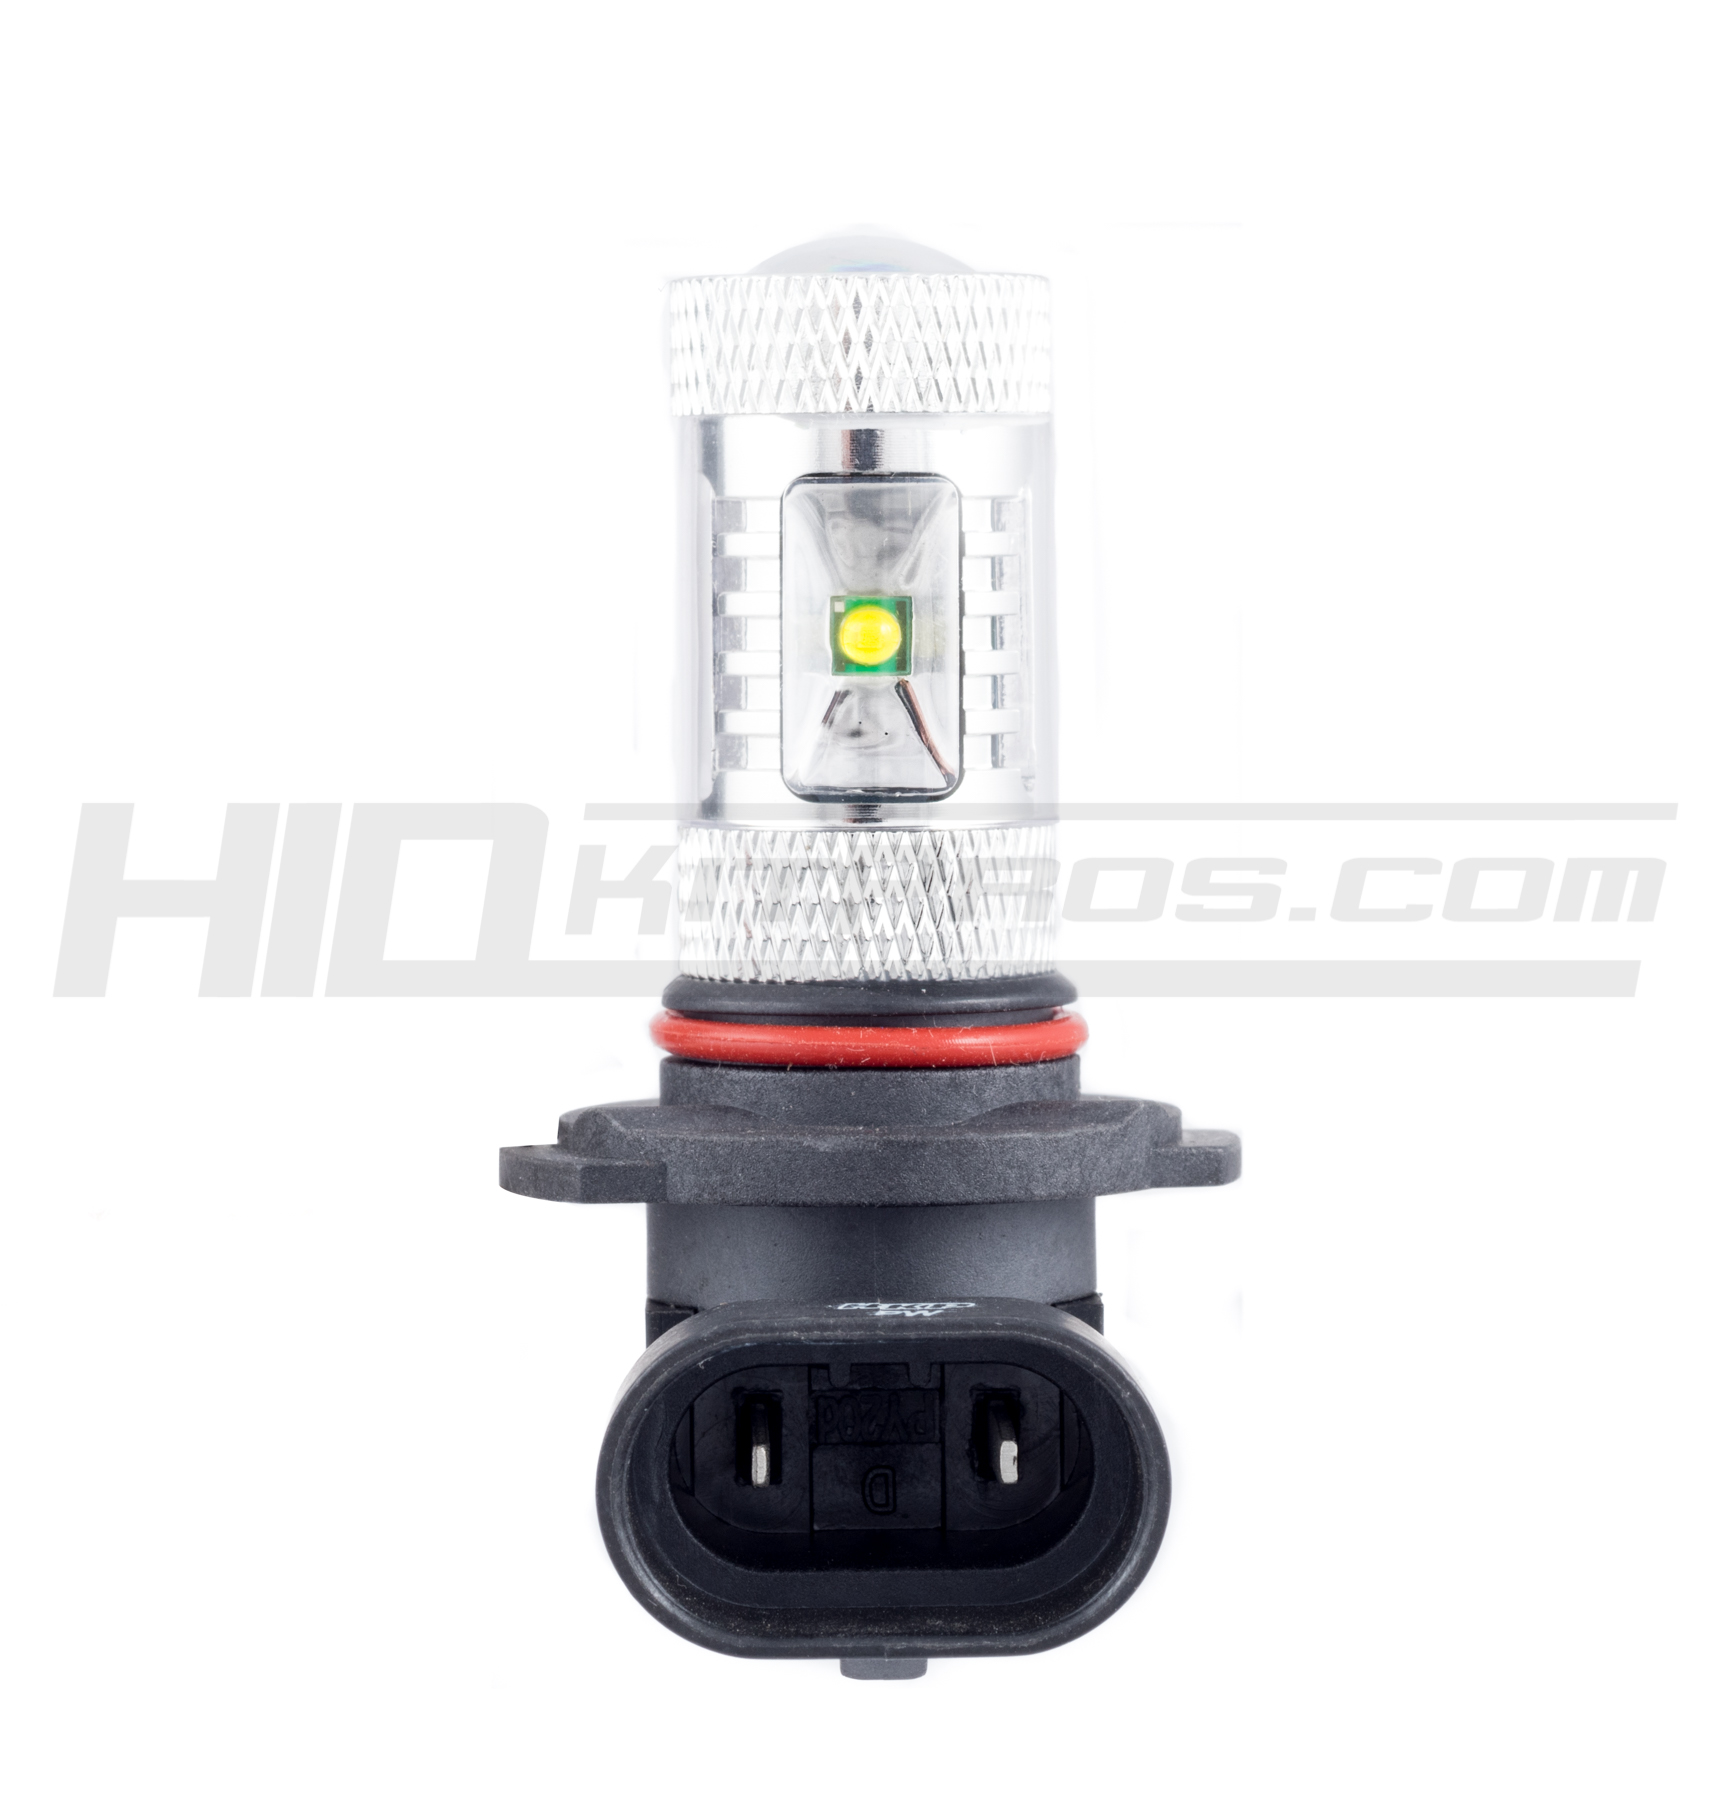 9140 Fog Light Bulb: 30W 9140 9145 LED Fog Light Bulb,Lighting